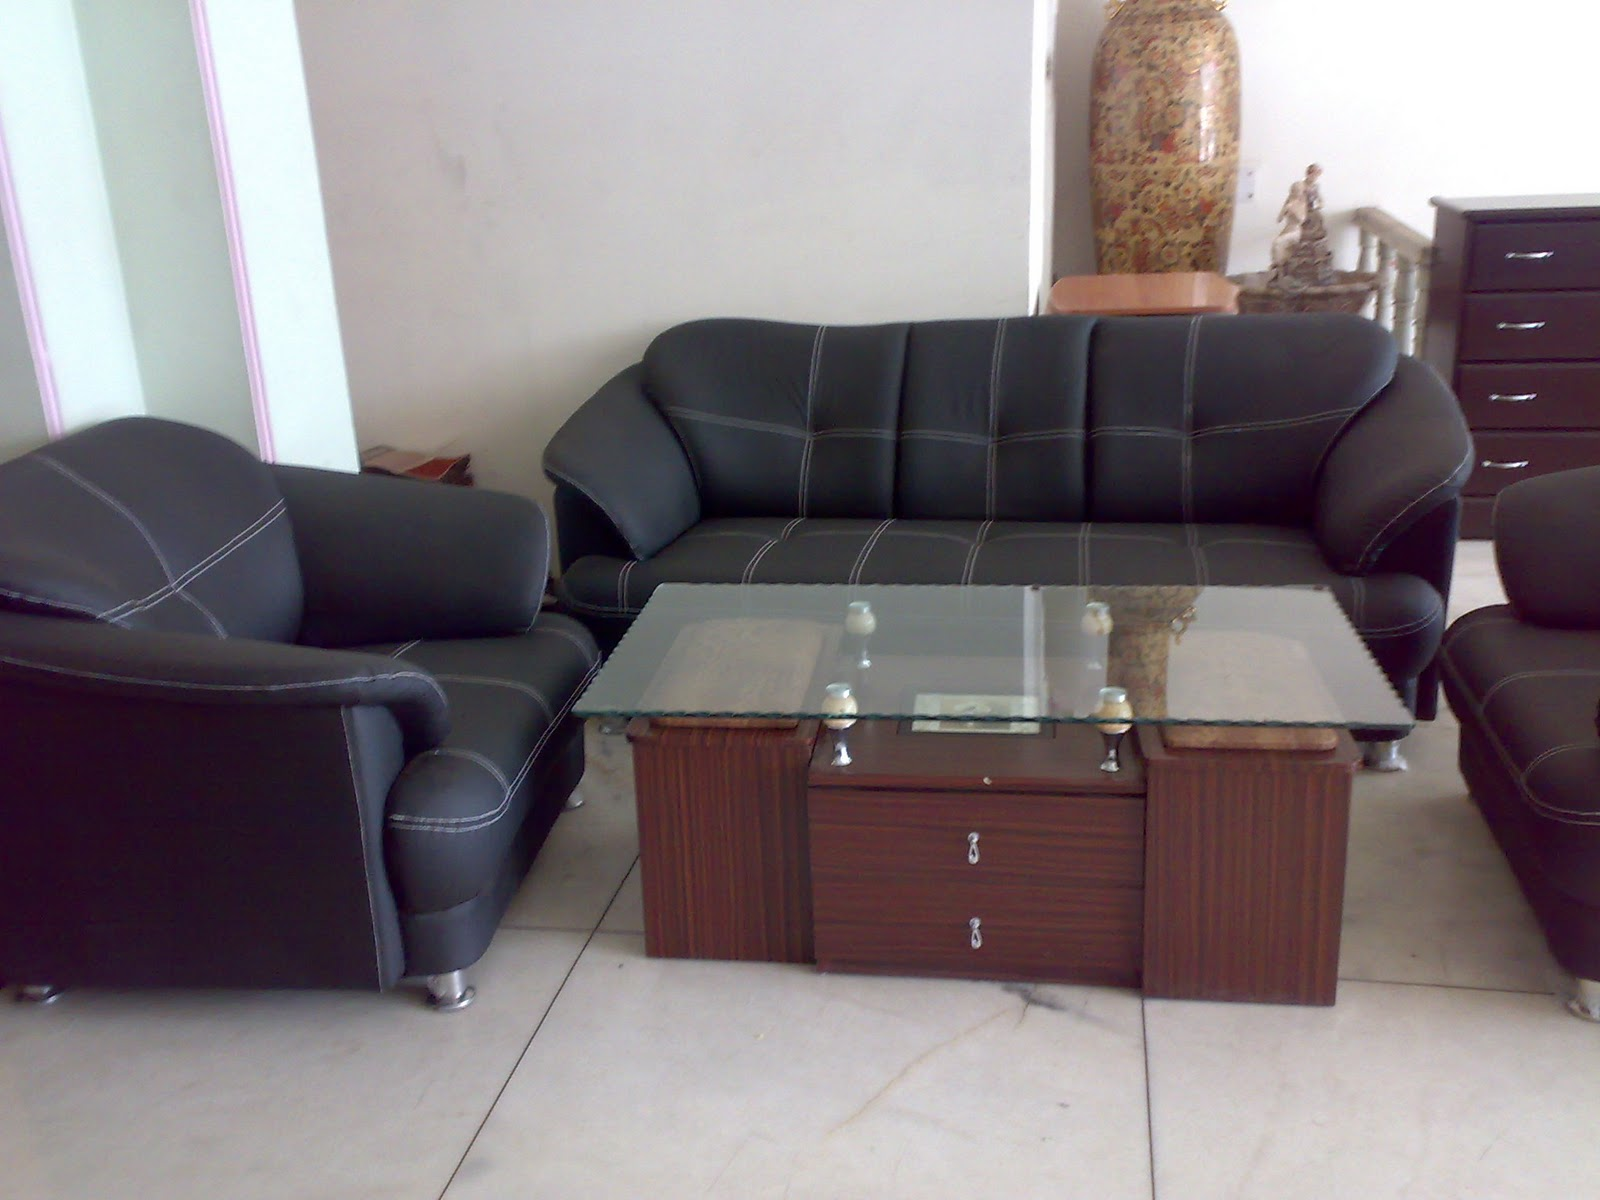 latest furniture  sofa designs   buy all kind of wooden furniture at lowest price in kirti nagar